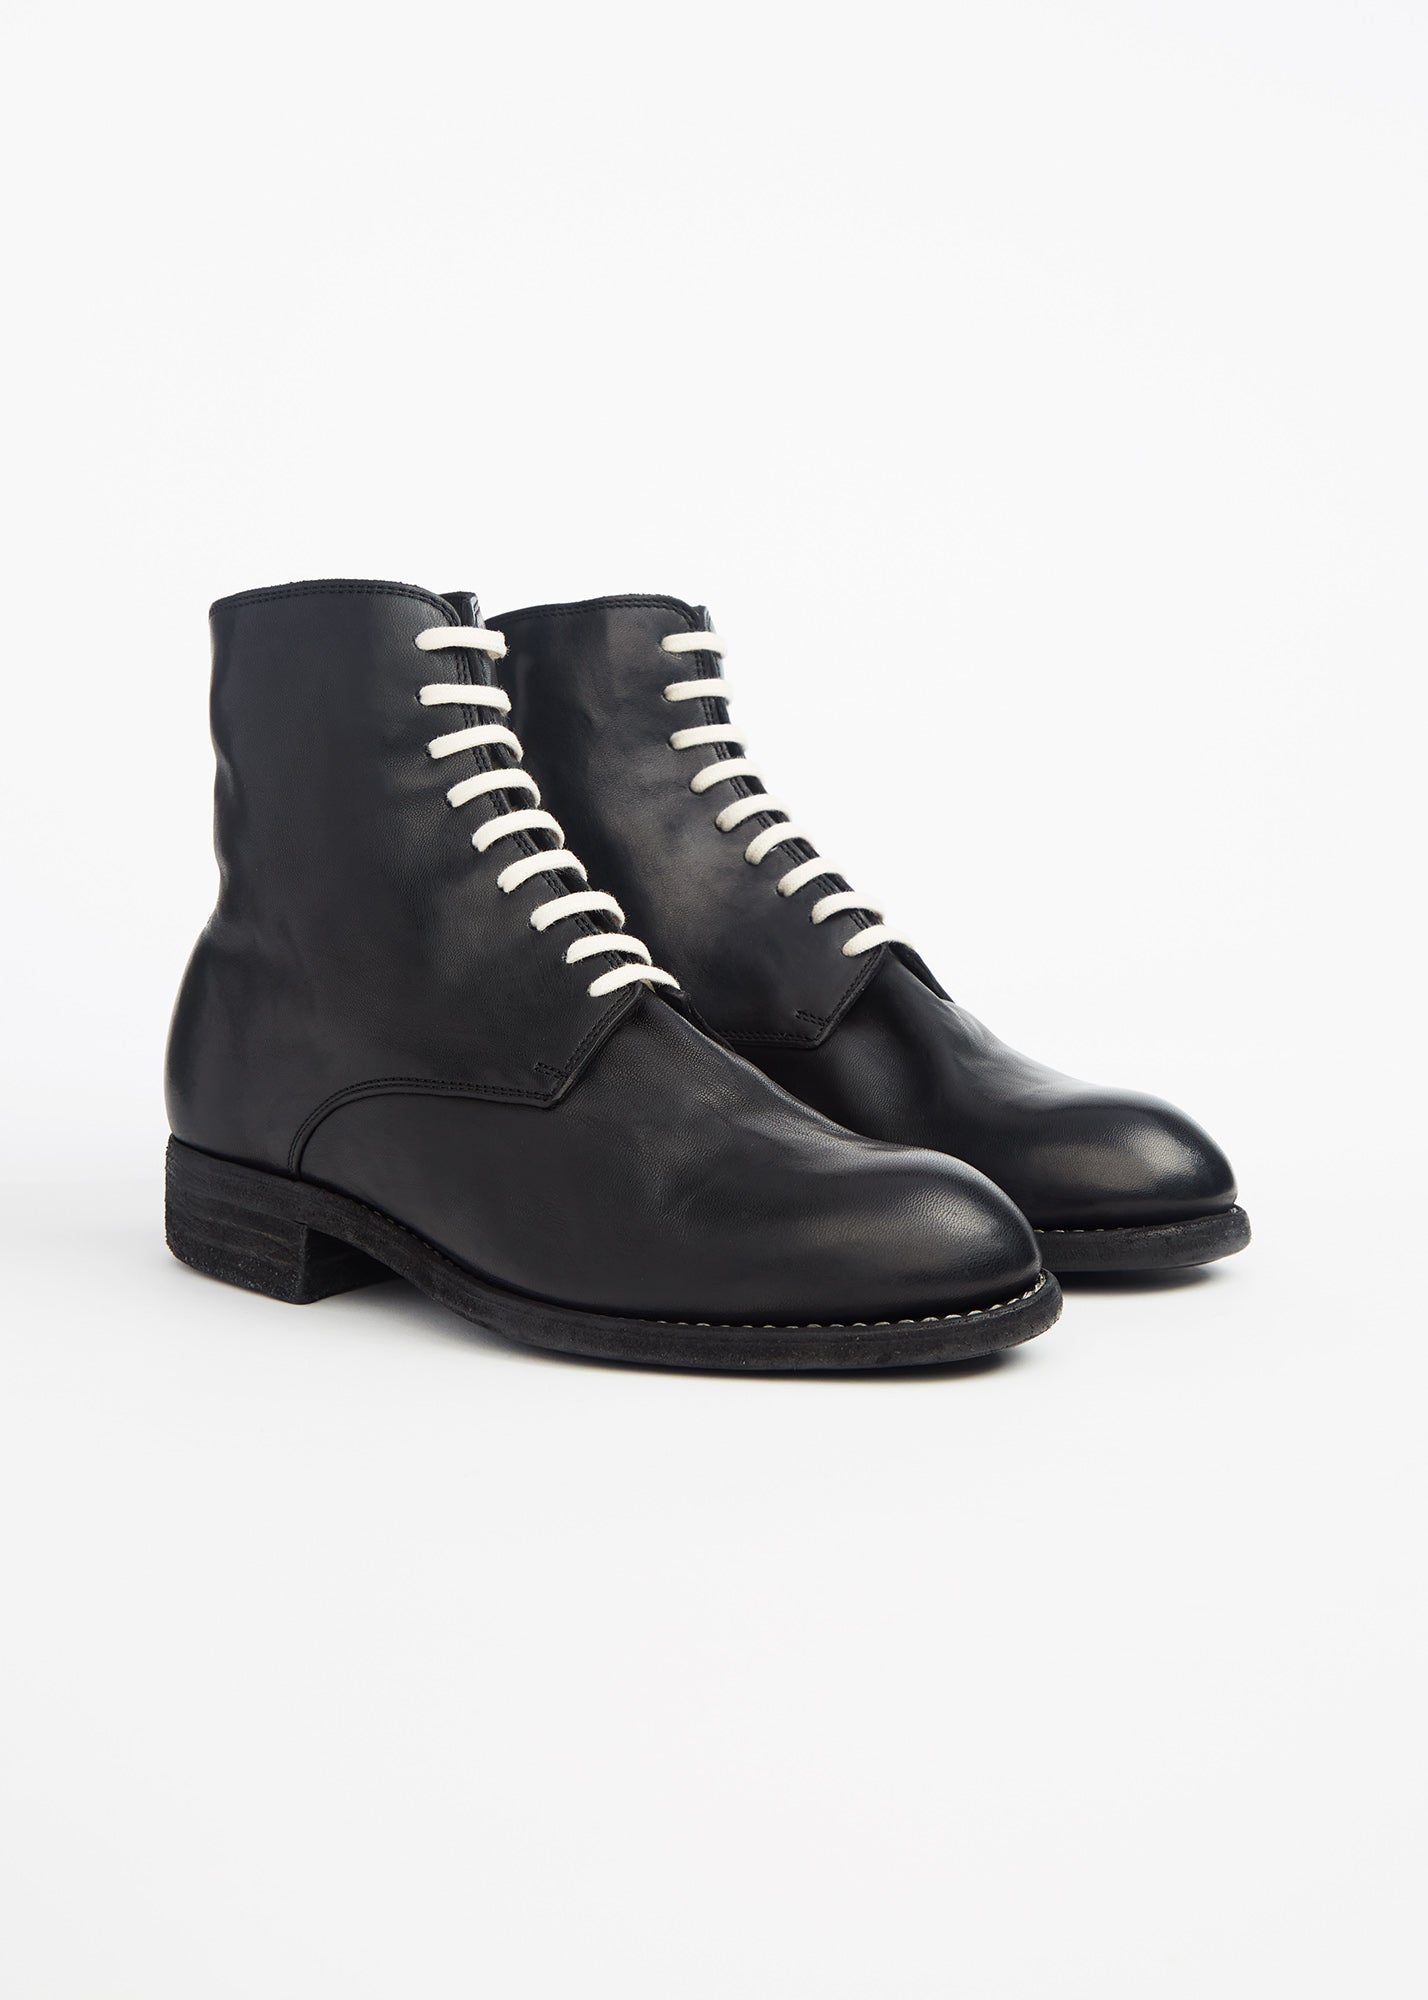 Vintage Lace Up Ankle Boots Black